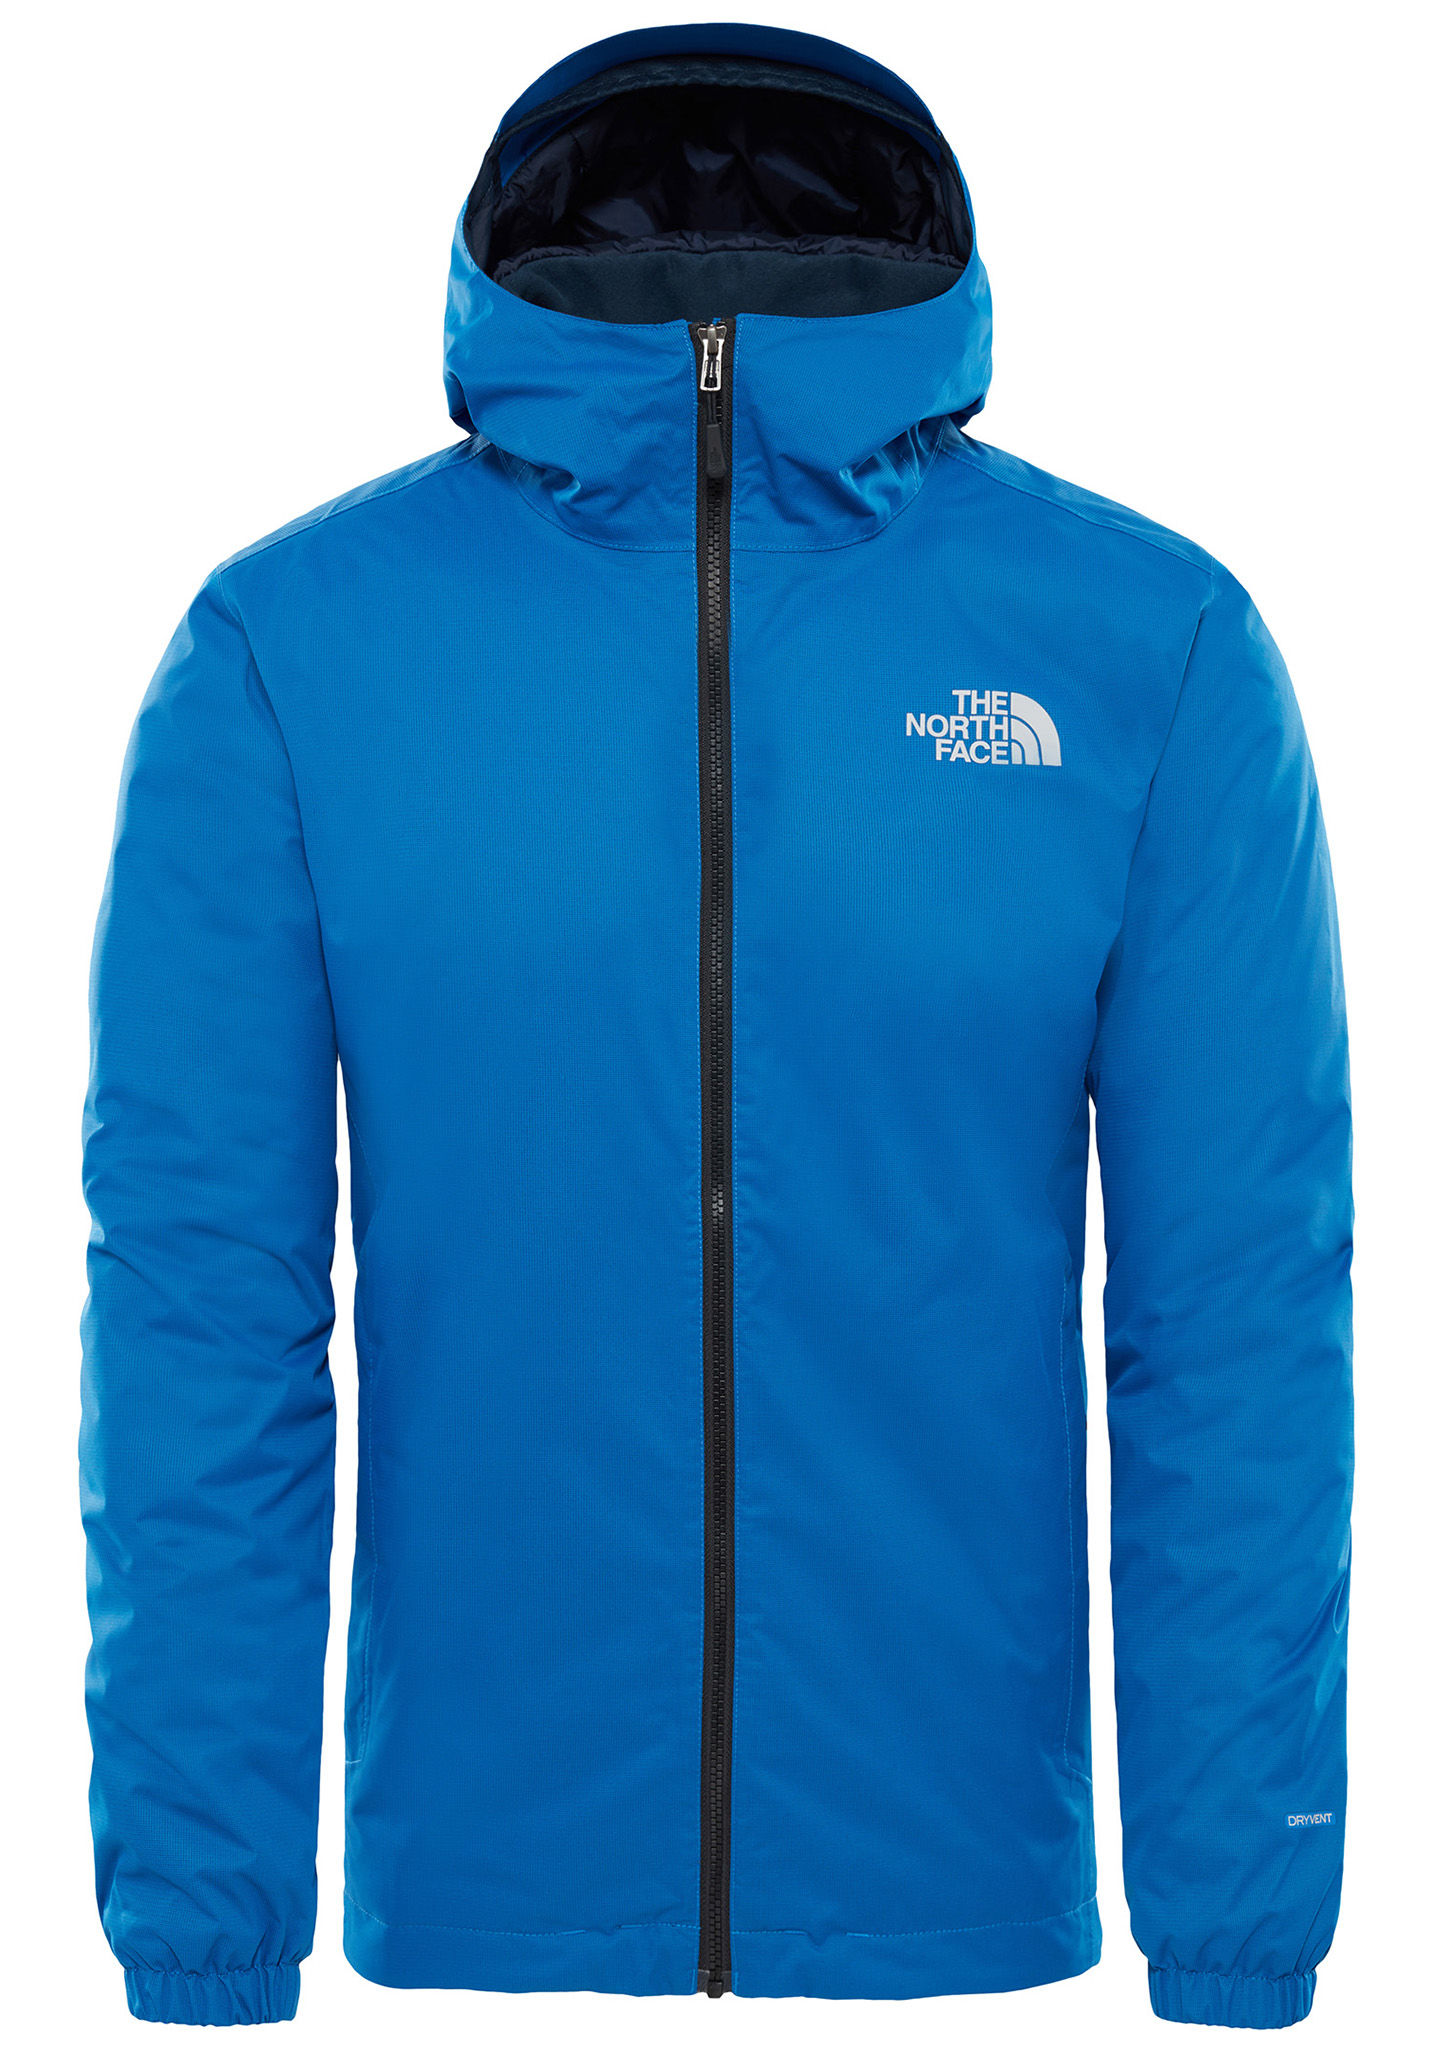 c042c7c706 THE NORTH FACE Quest Insulated - Funktionsjacke für Herren - Blau - Planet  Sports